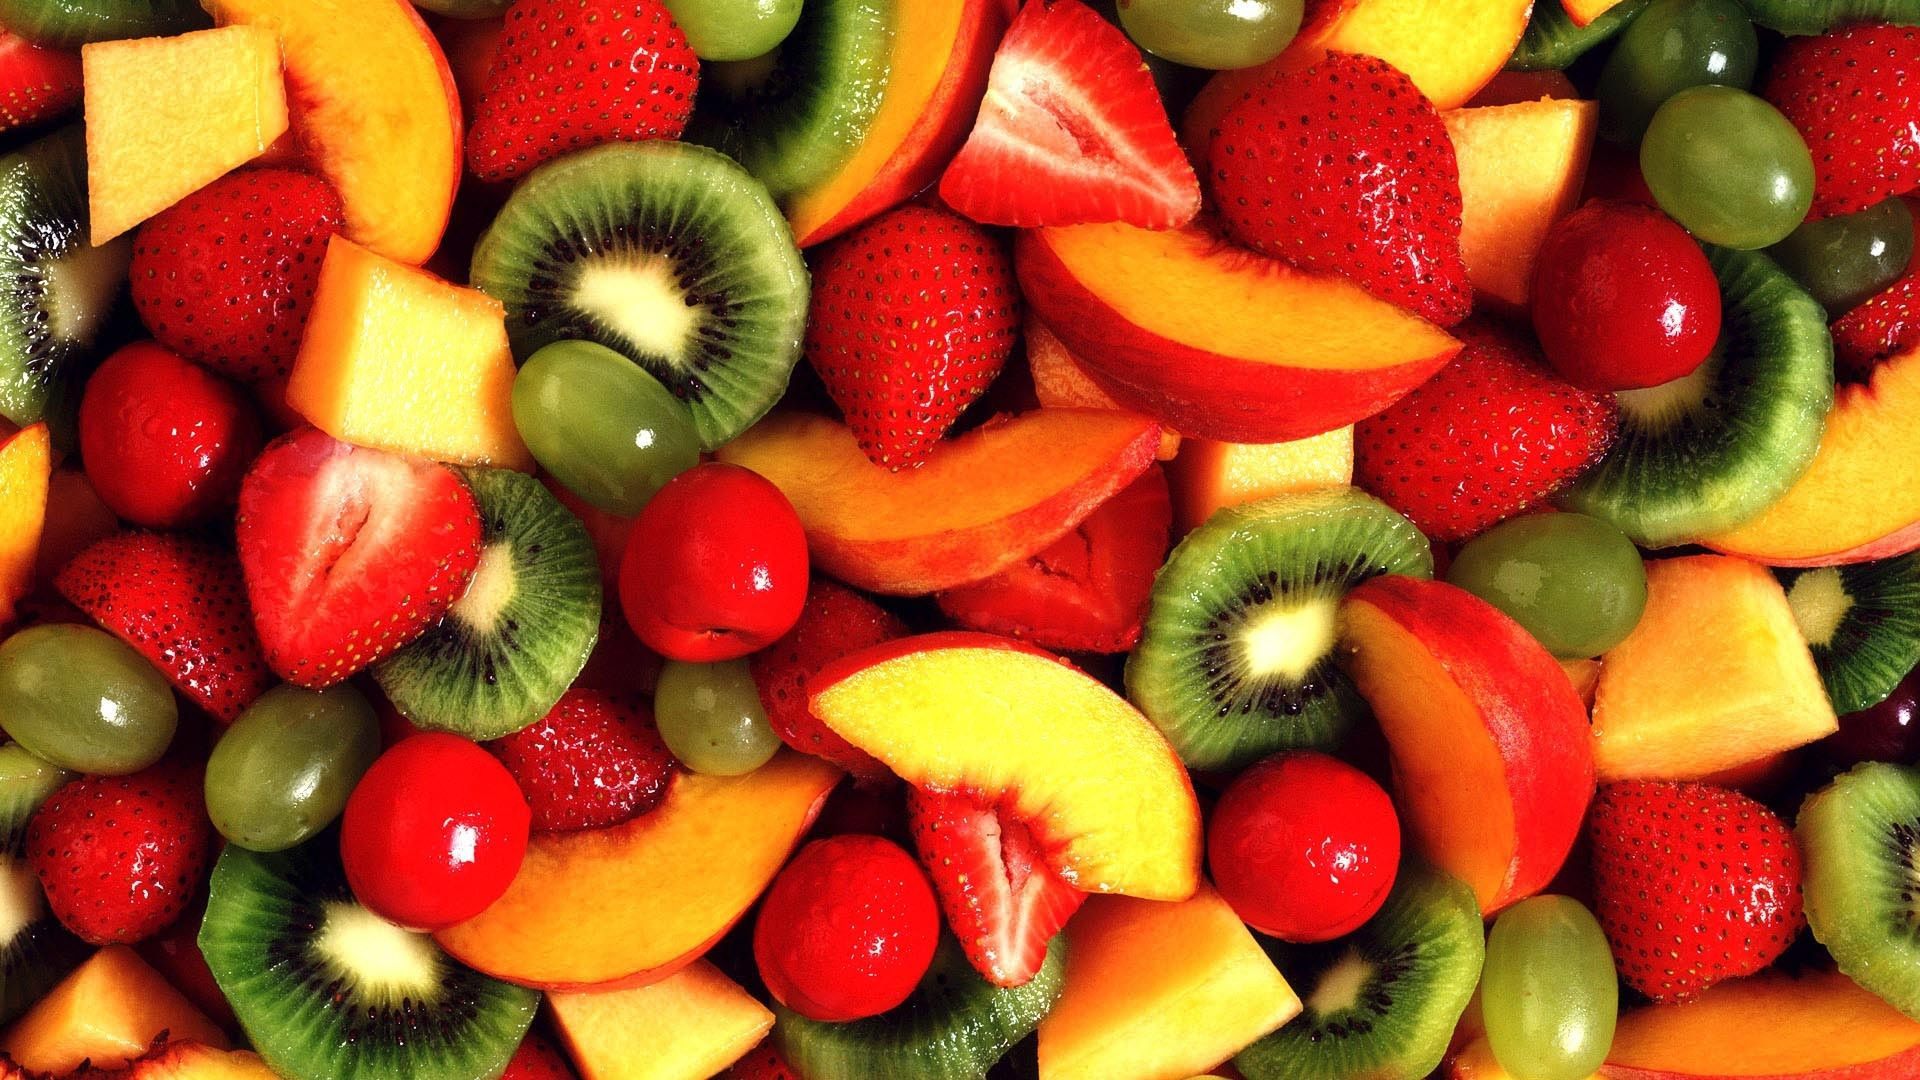 fruits images free download